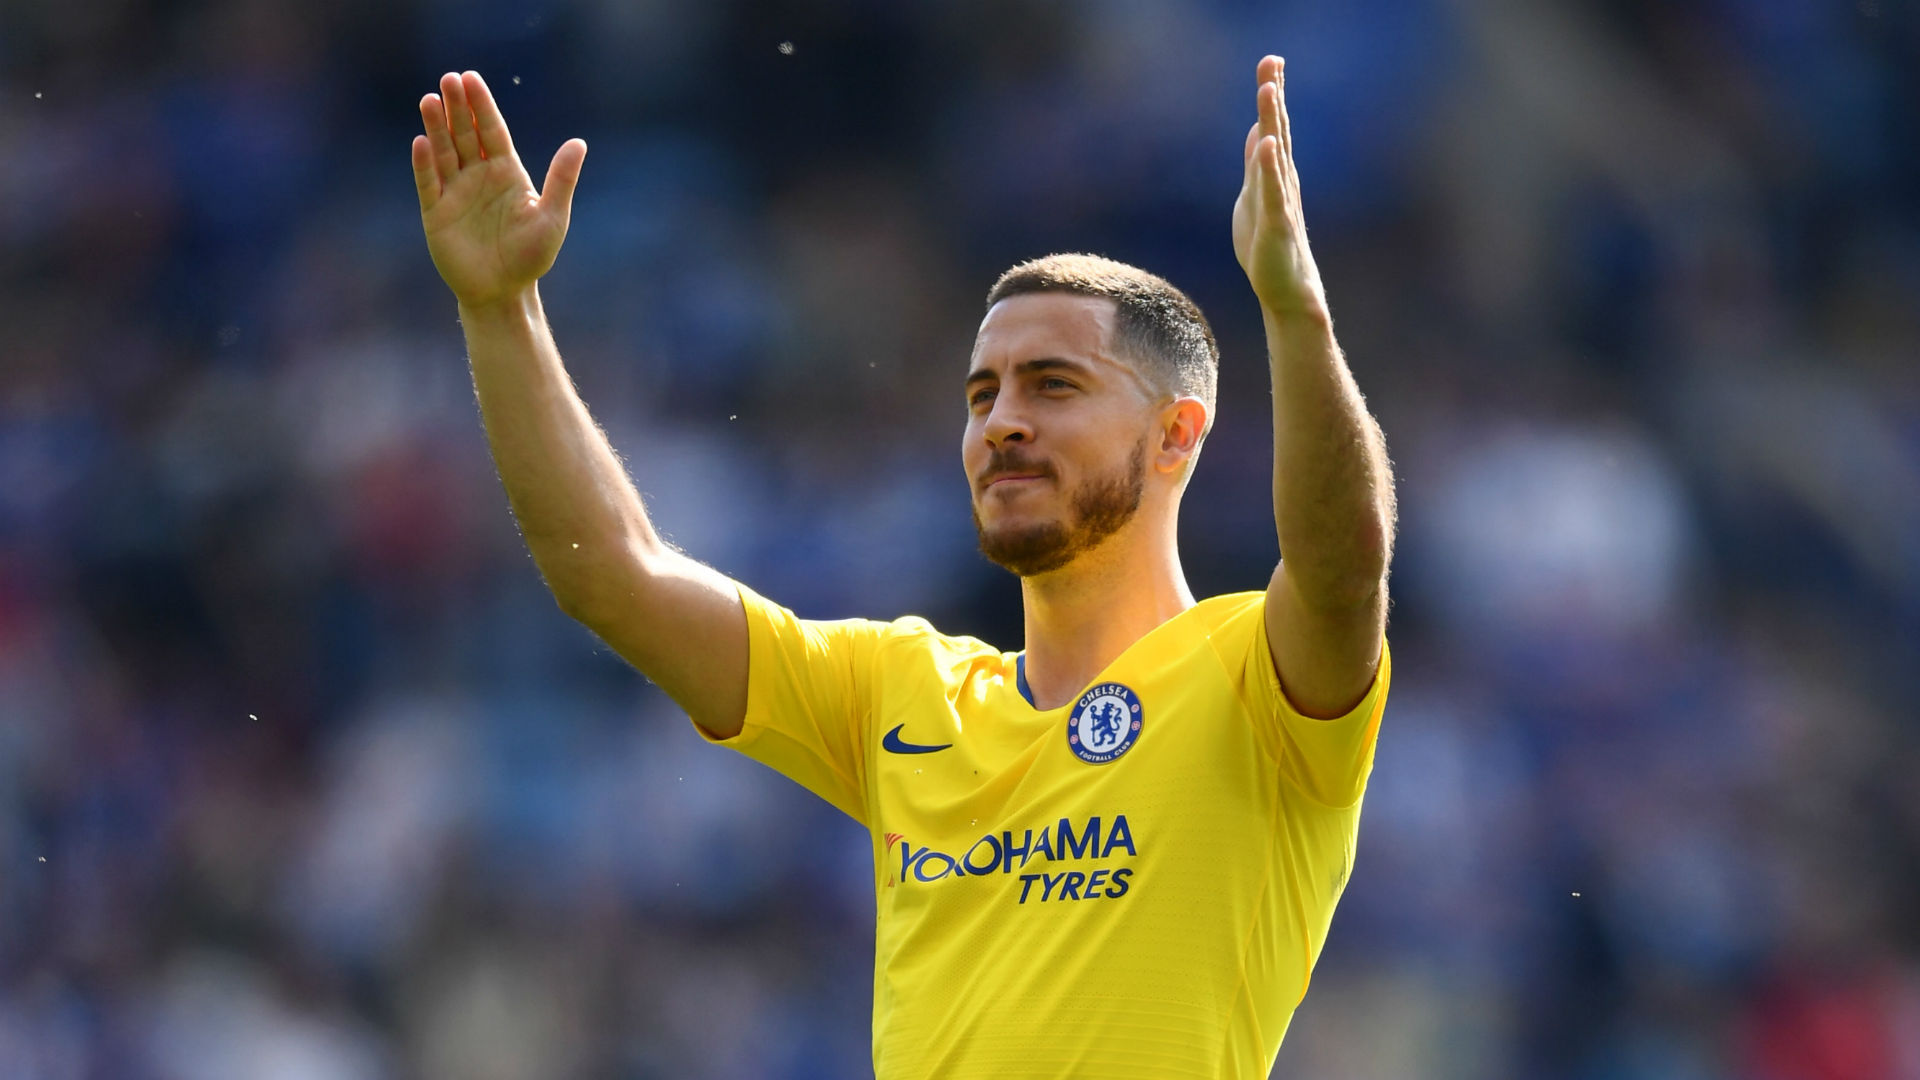 Sarri hopes Hazard stays at Chelsea but will respect any decision